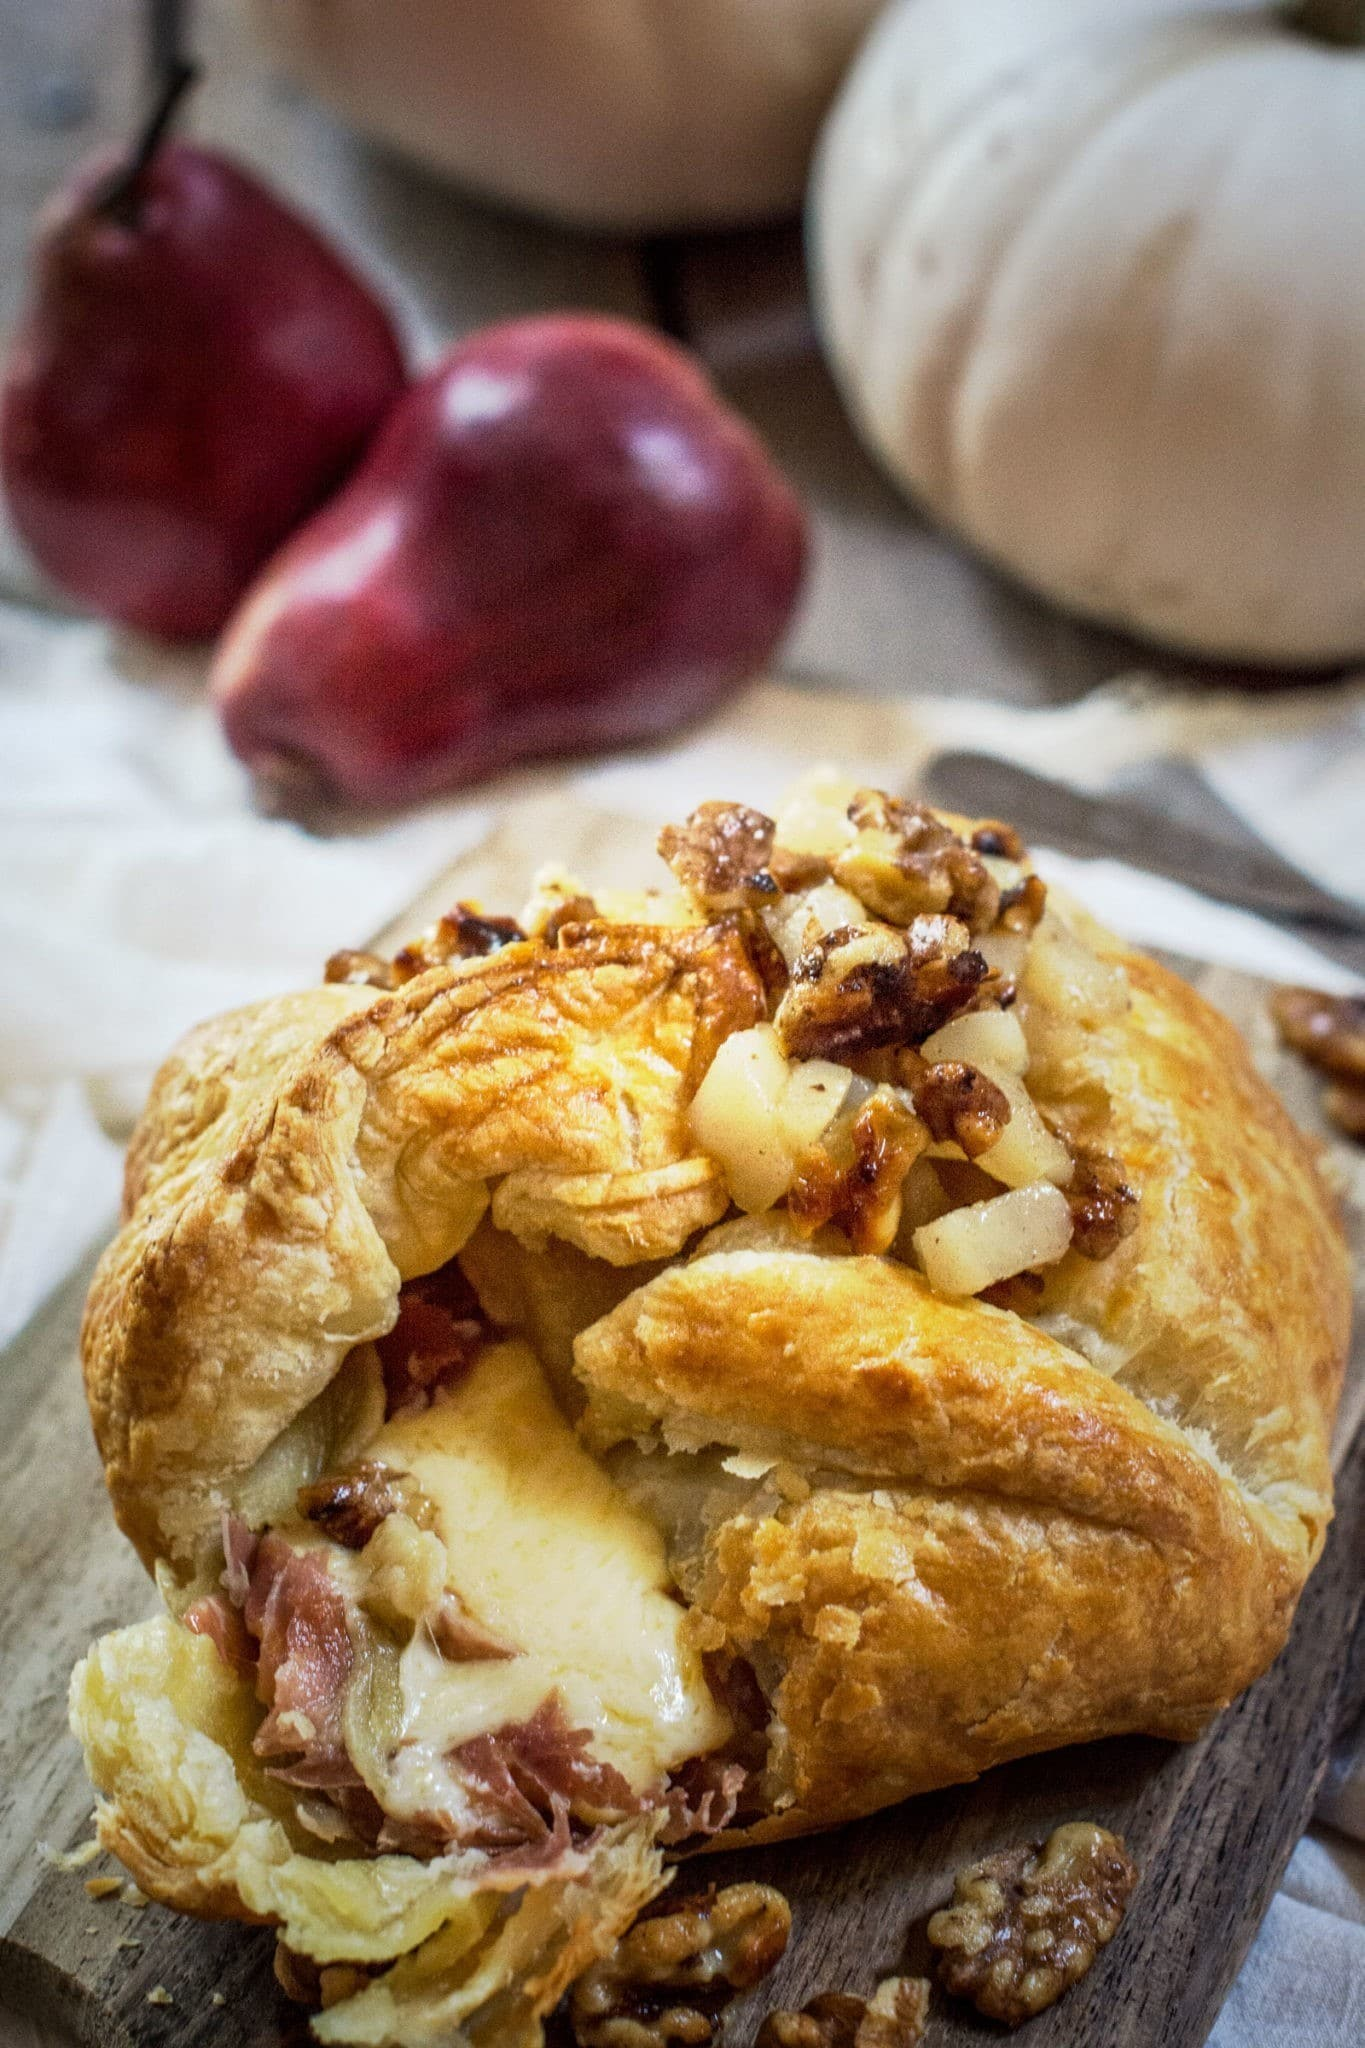 Make this gorgeous appetizer for your next get together, Bake Gouda! It's full of layers of flavors, wrapped in Prosciutto, then baked in a puff pastry and topped off with a warm Pear and Walnut Compote! Get the recipe at Little Figgy Food.